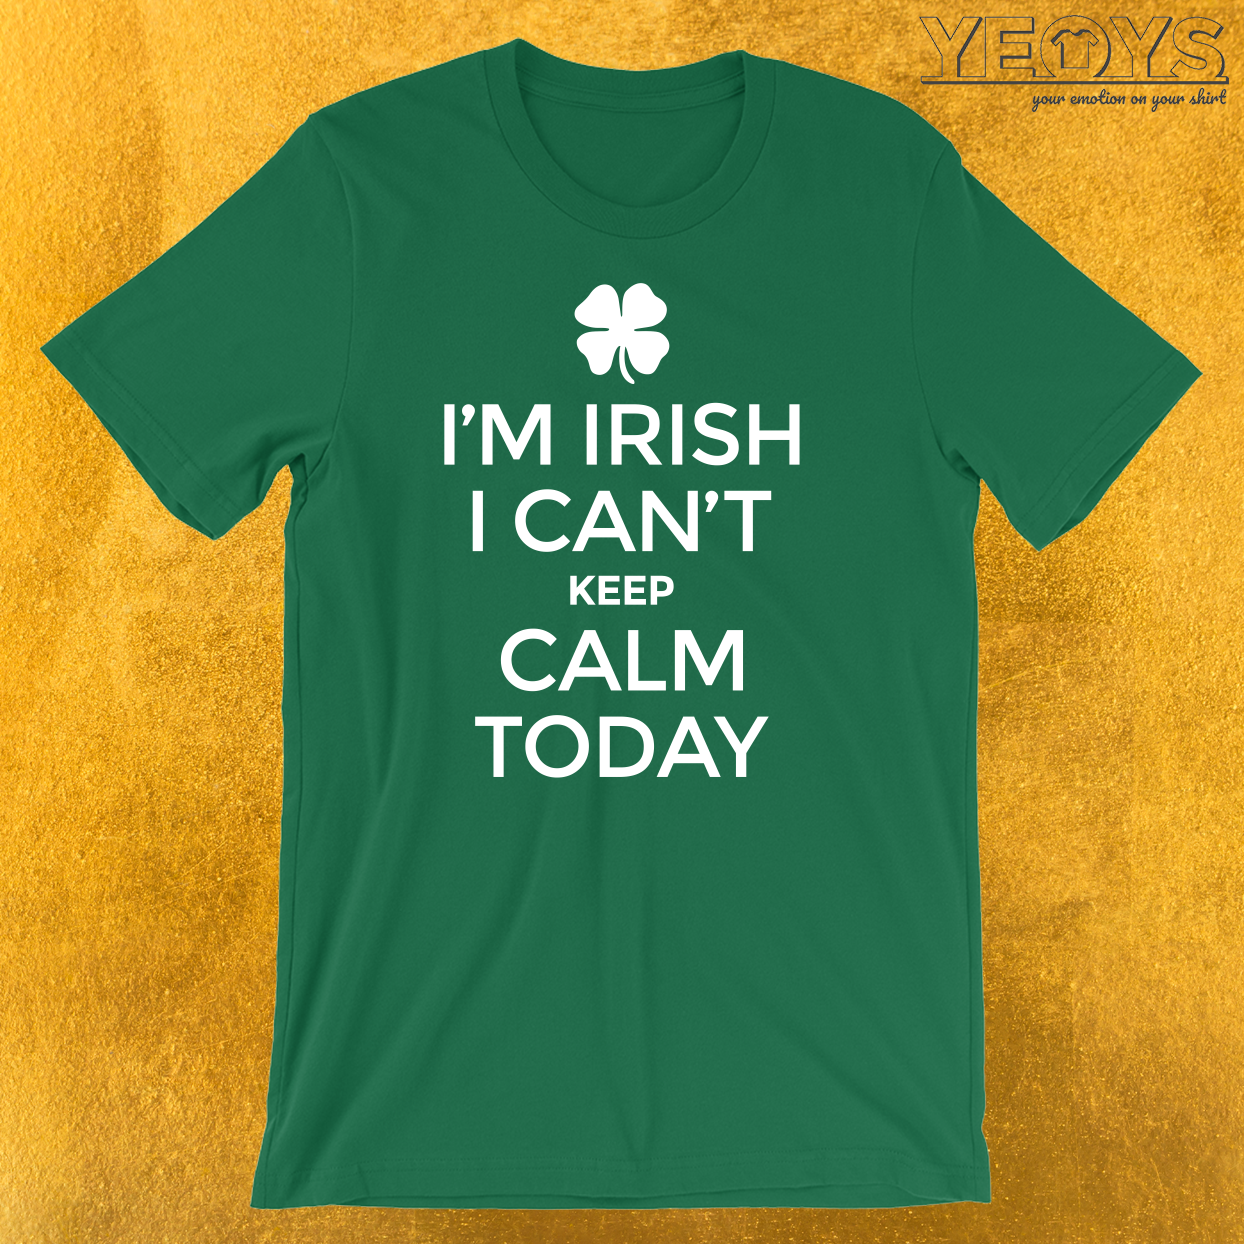 I'm Irish I Can't Keep Calm Today T-Shirt